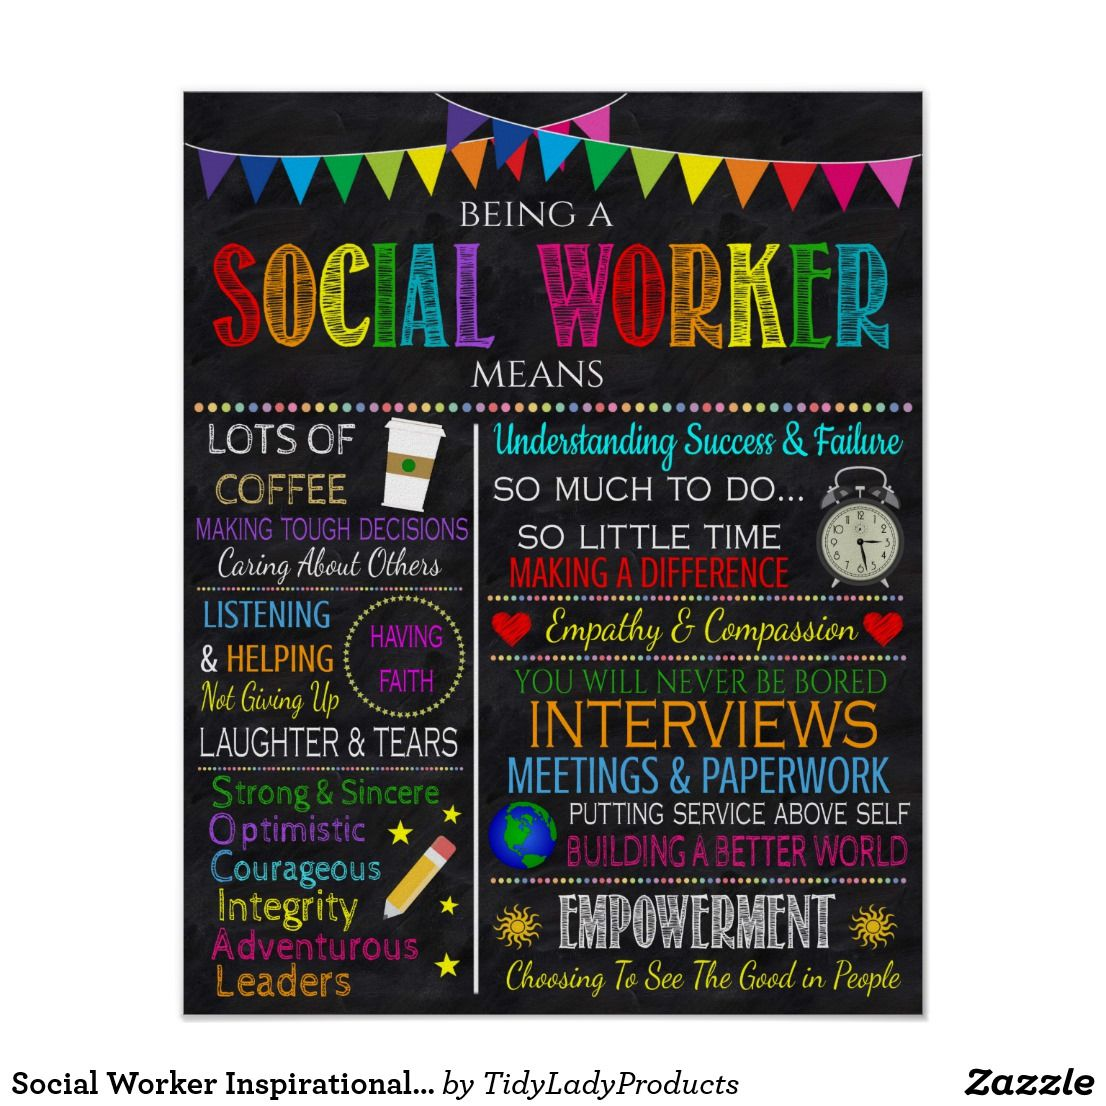 Social Worker Inspirational Art Poster Zazzle Com In 2021 Social Worker Office Decor Social Worker Gifts Social Workers Office